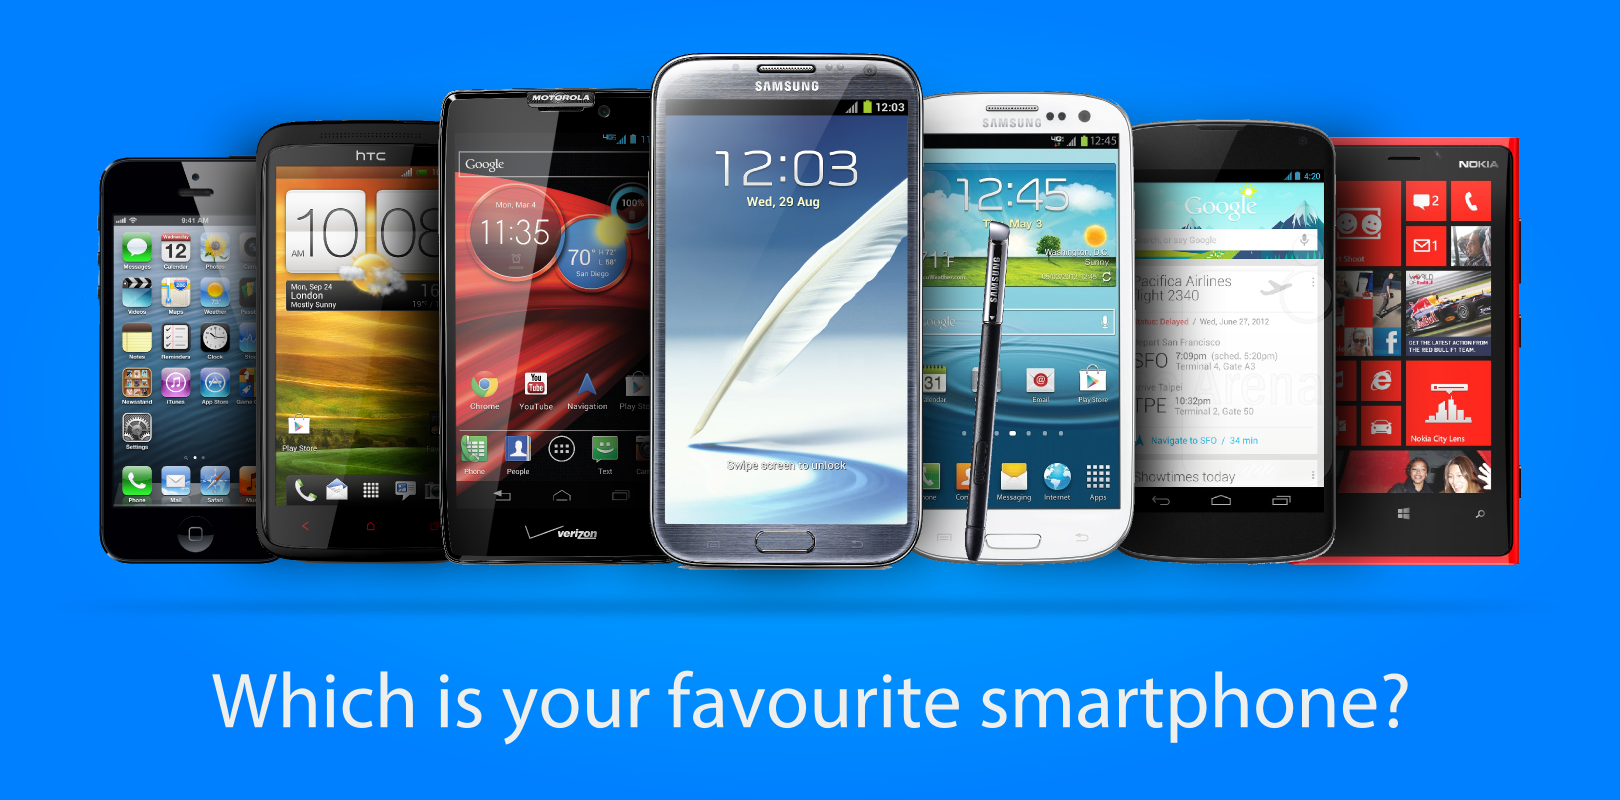 Whats your Favorite Smart Phone?